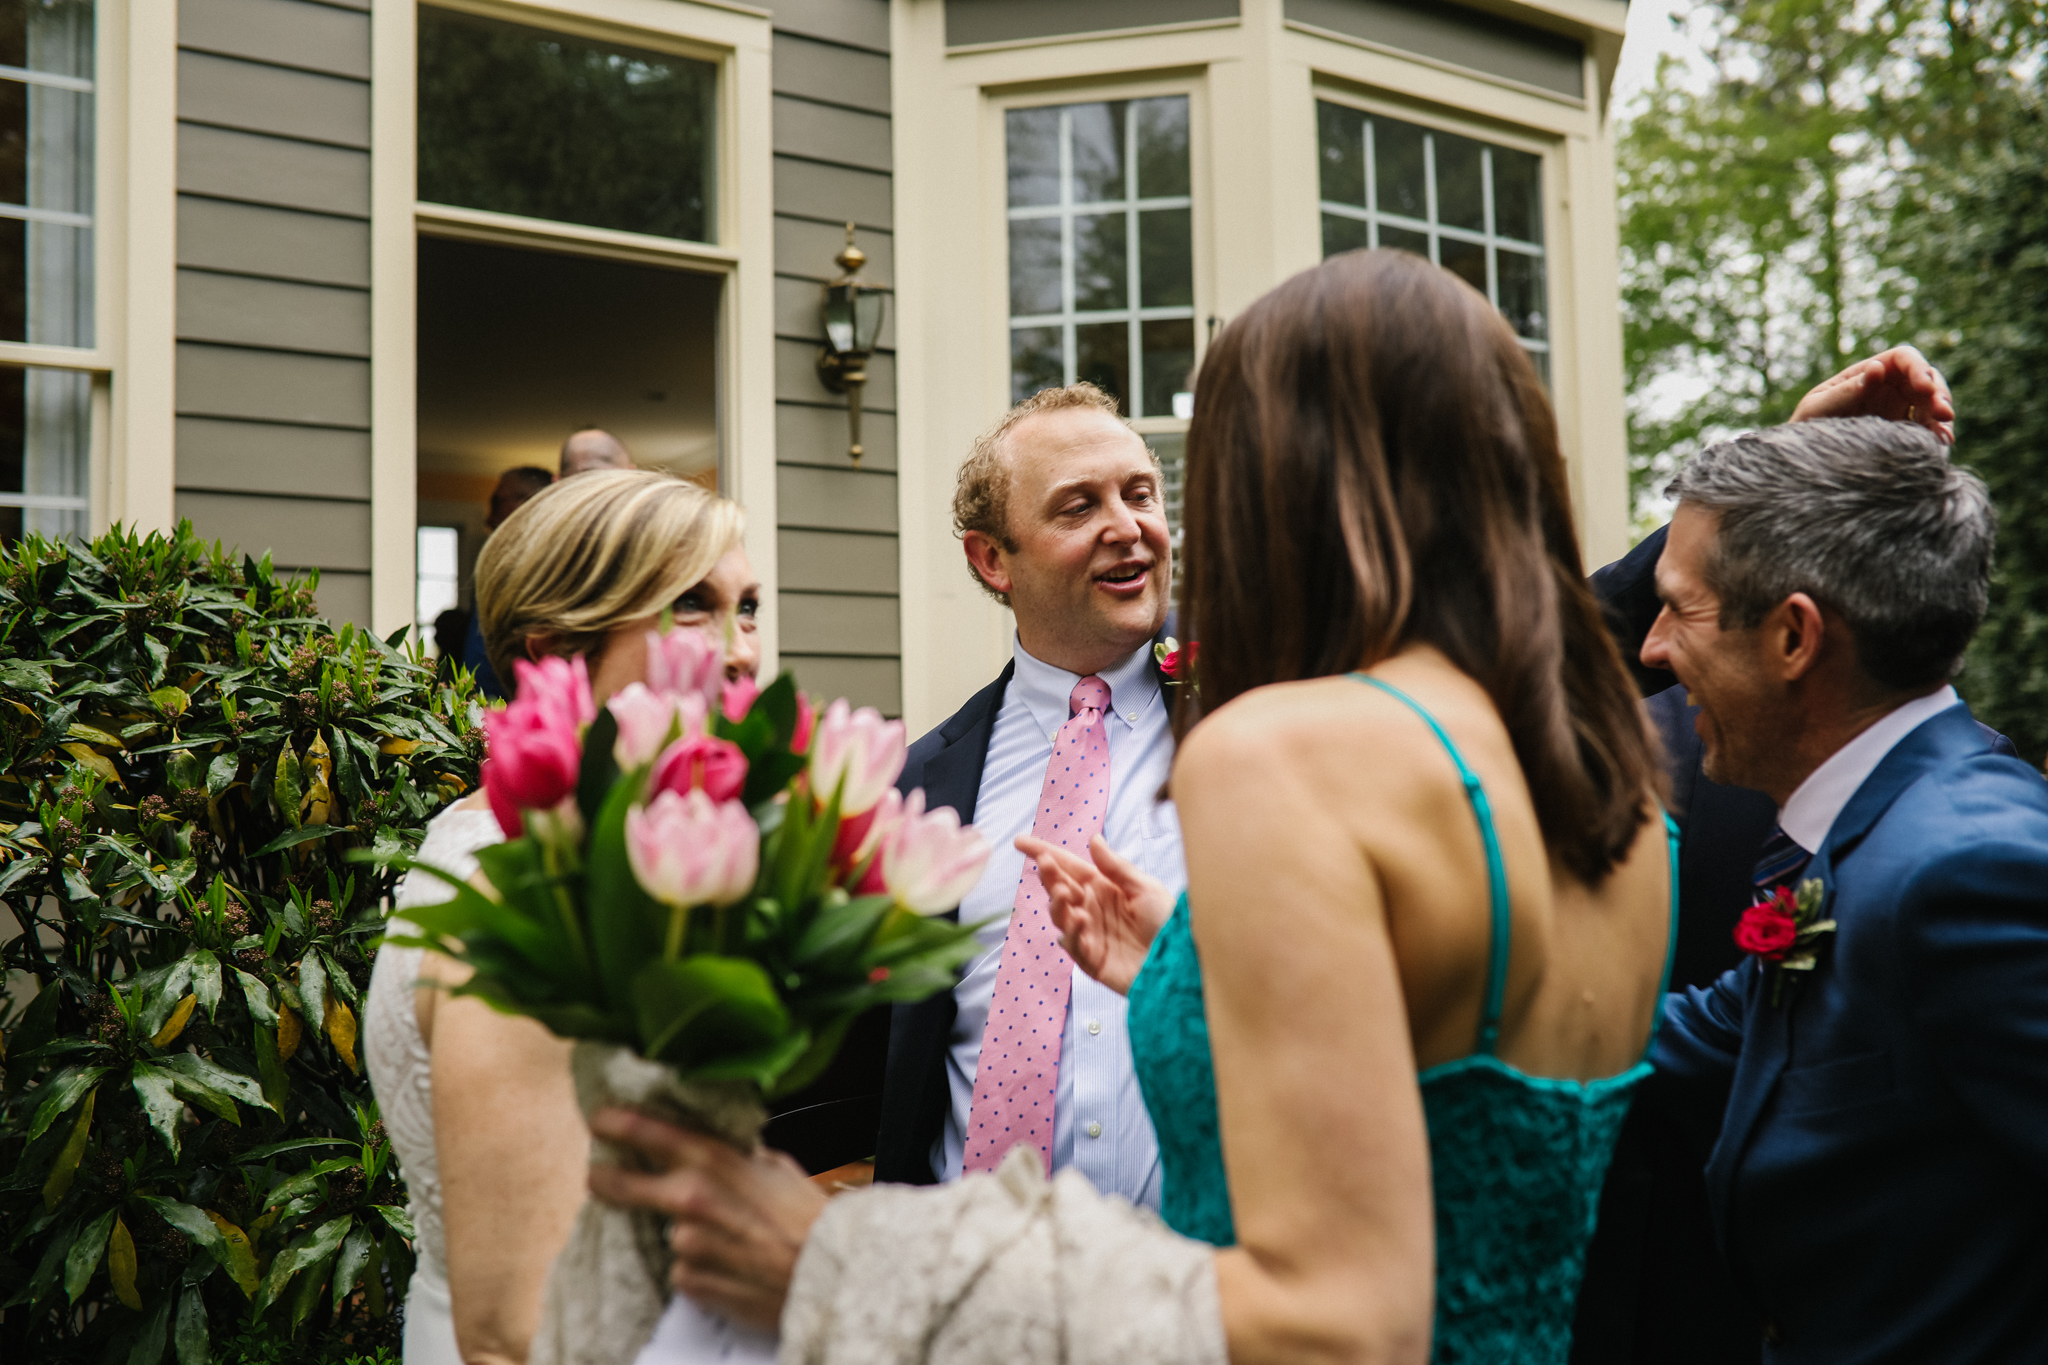 cook_wedding_richmond_virginia_rebecca_burt_photography-54.jpg